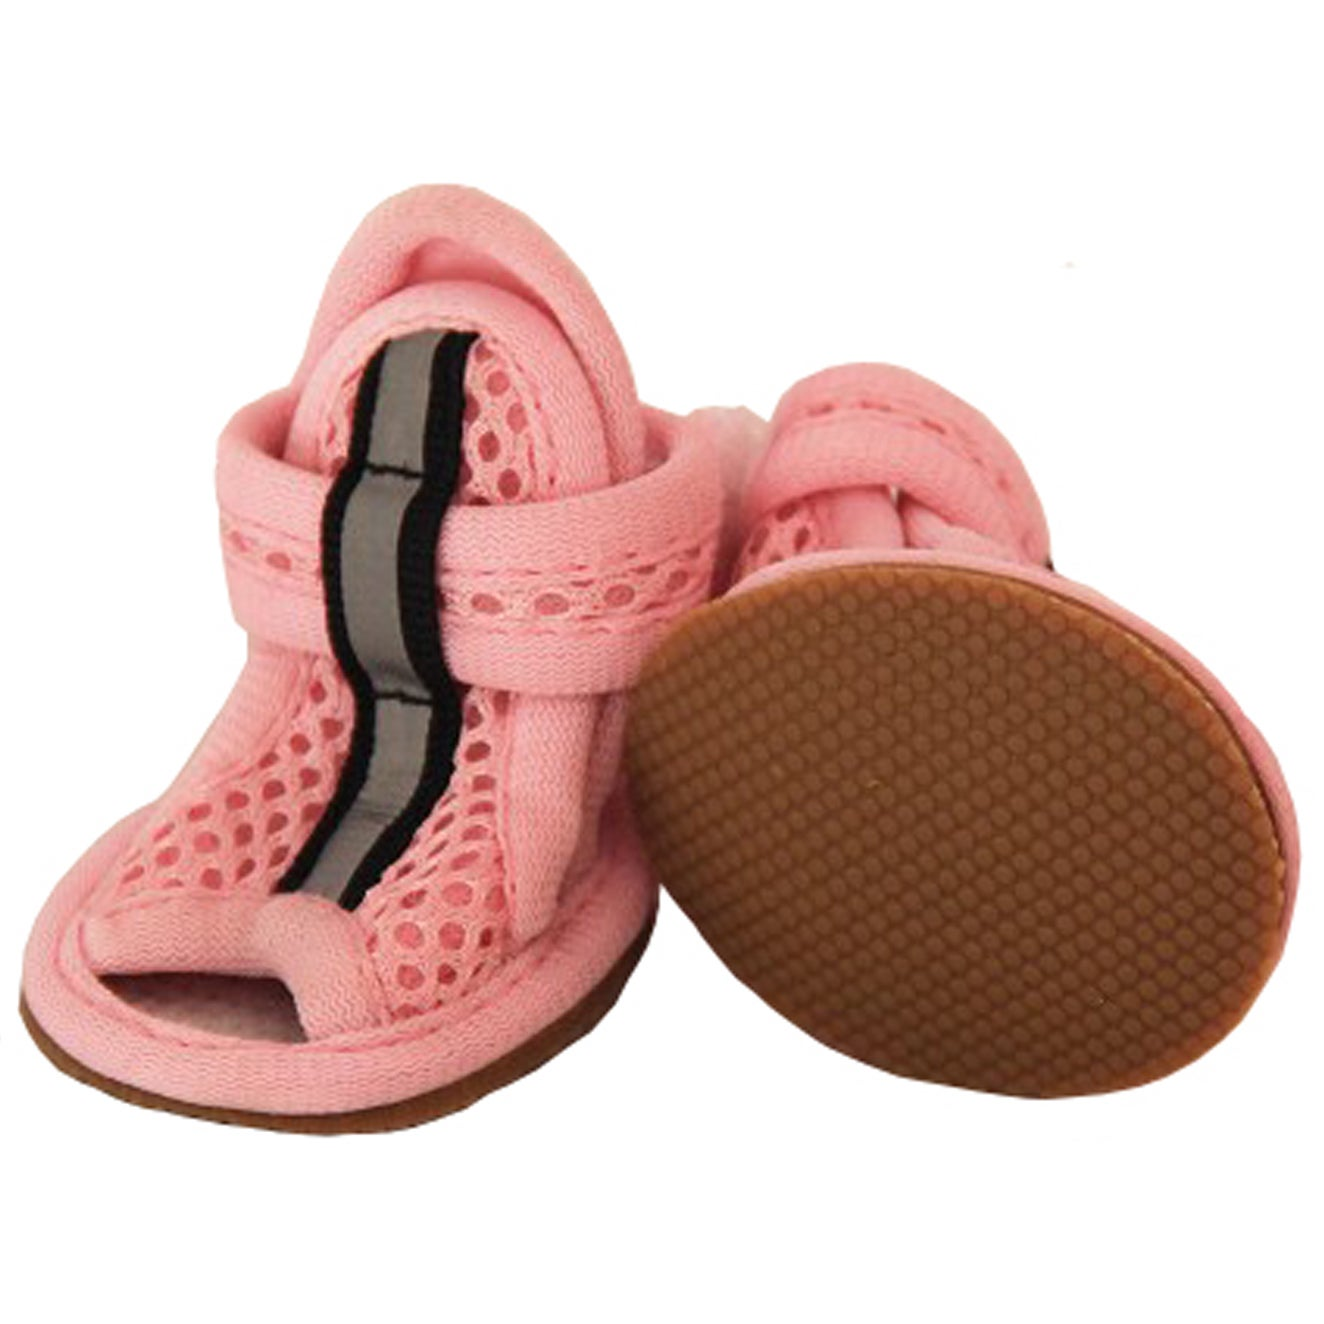 Petlife Light Pink Sporty Mesh Pet Sandals (Set of 4) (L)